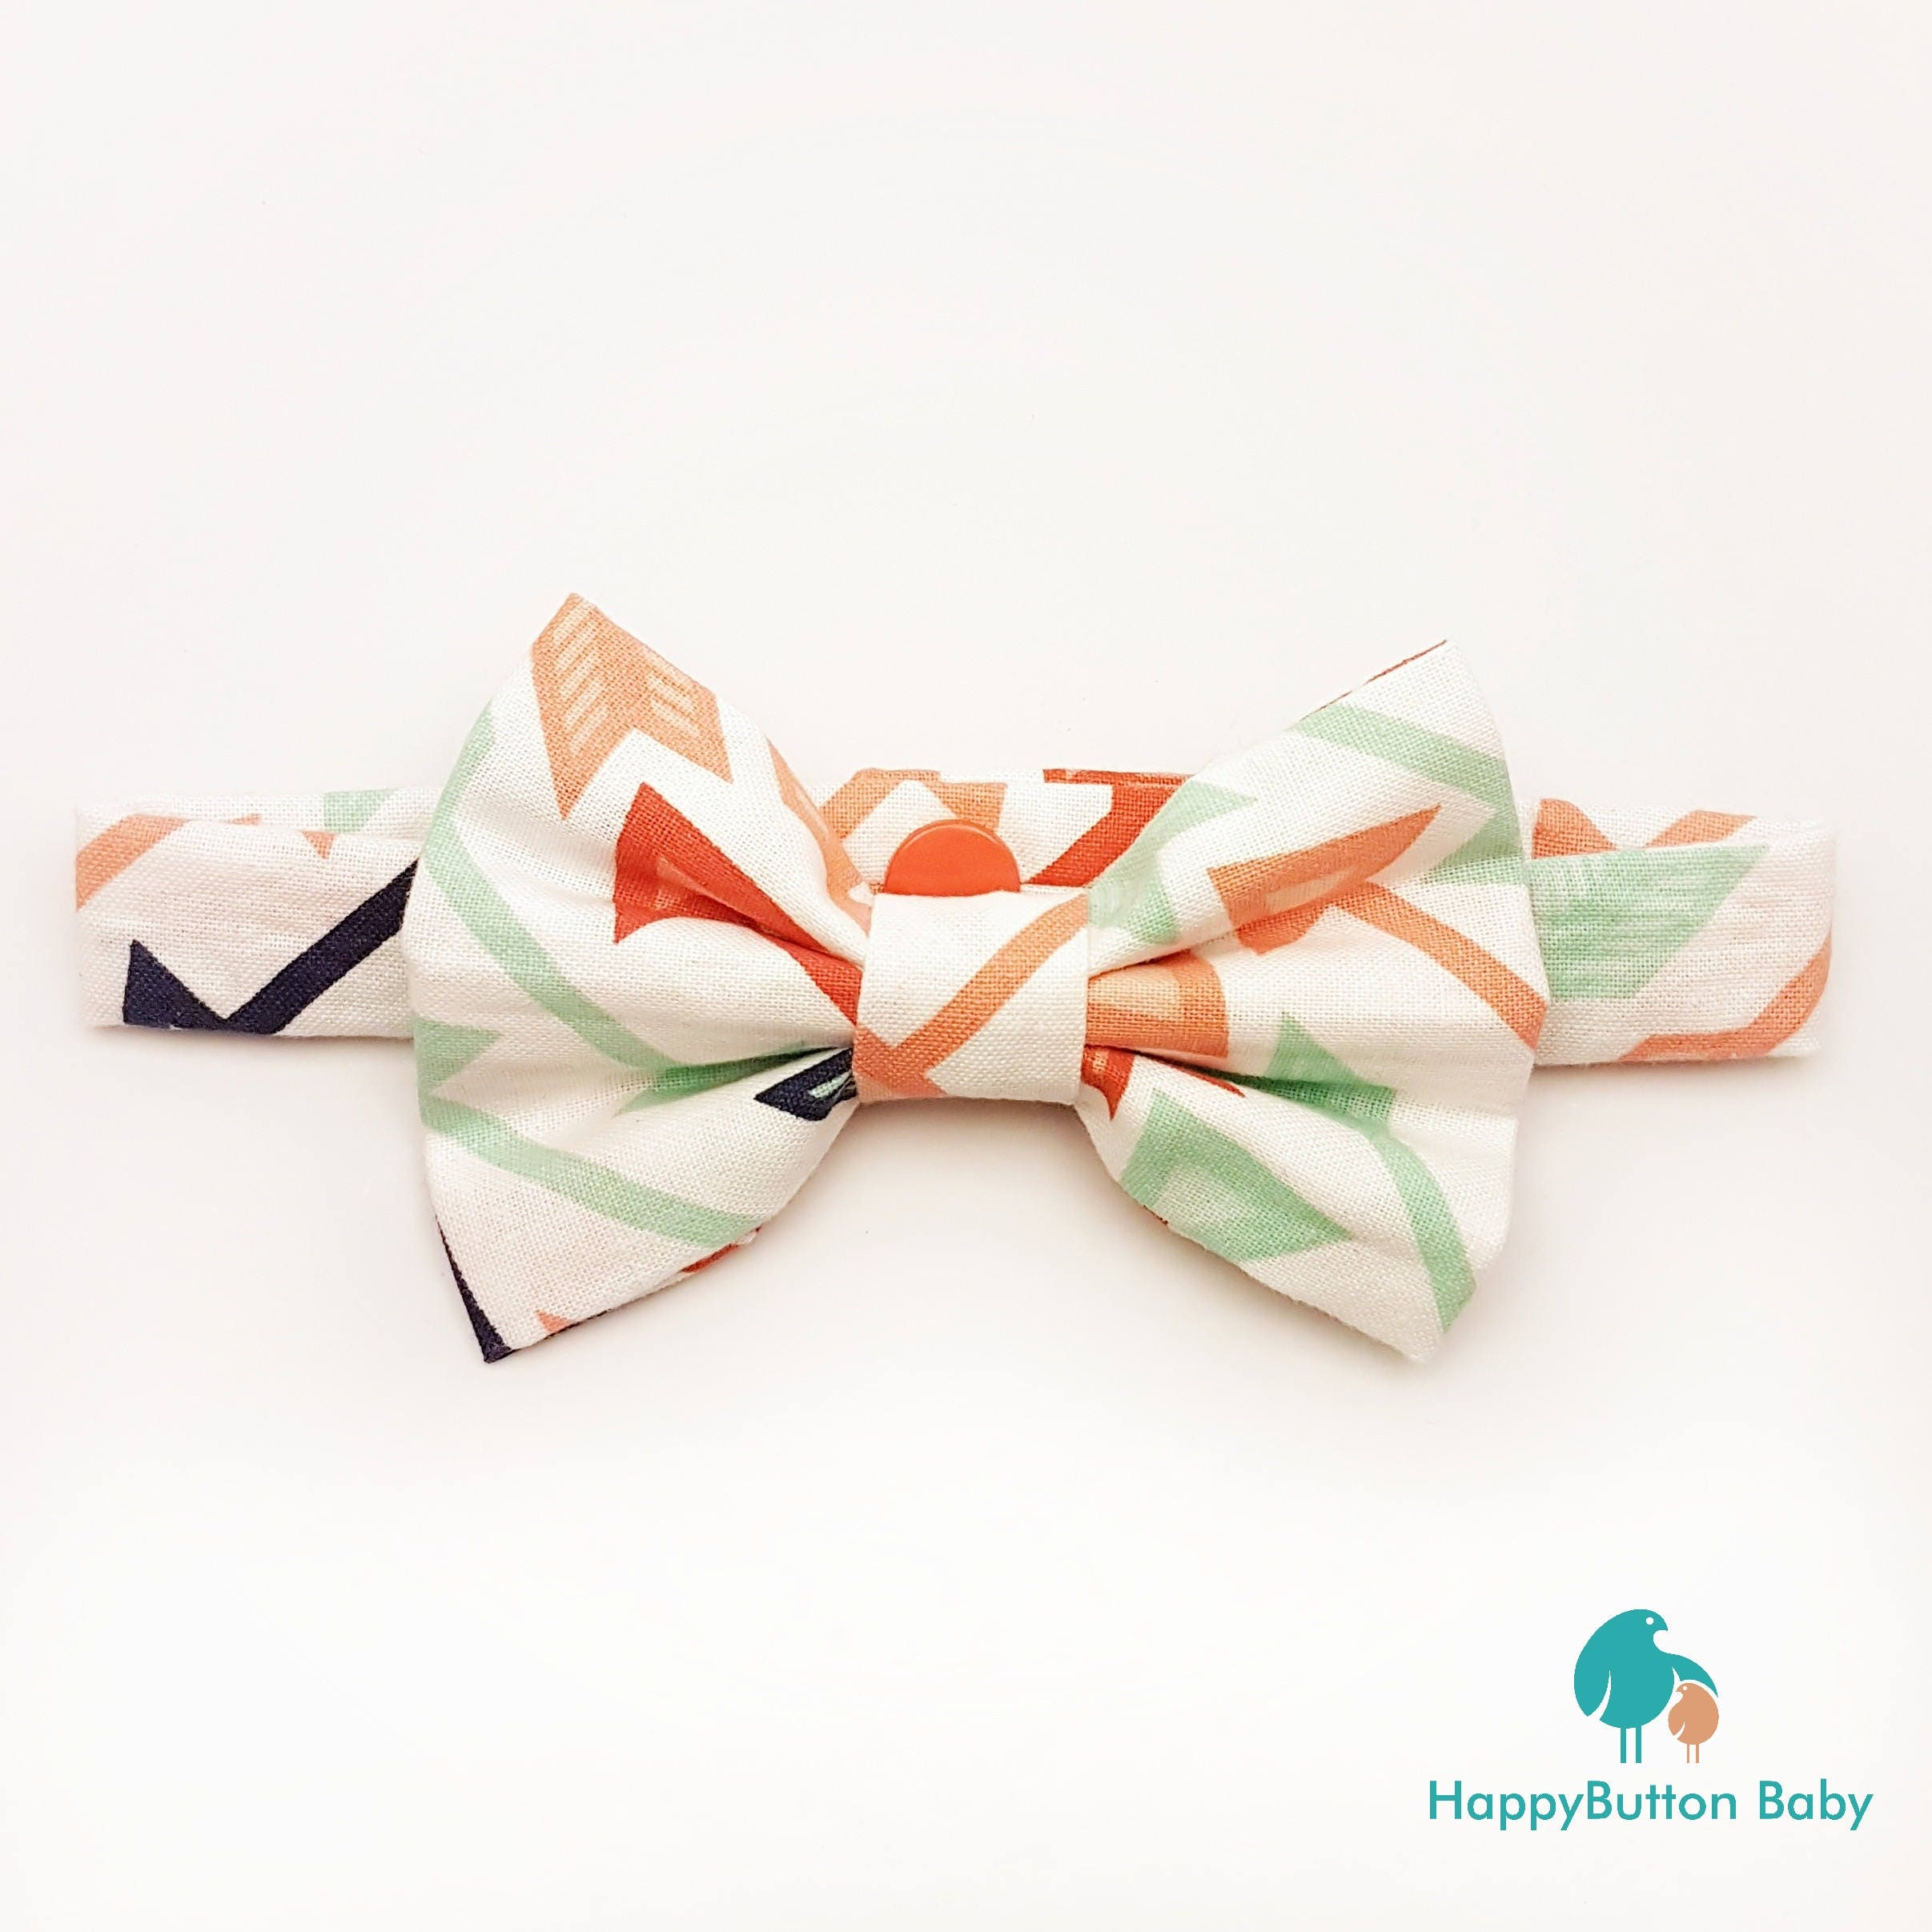 986aafb4e4395 Boys Adjustable Bow Tie, Boys Bowties, Kids Bowties, Baby and ...